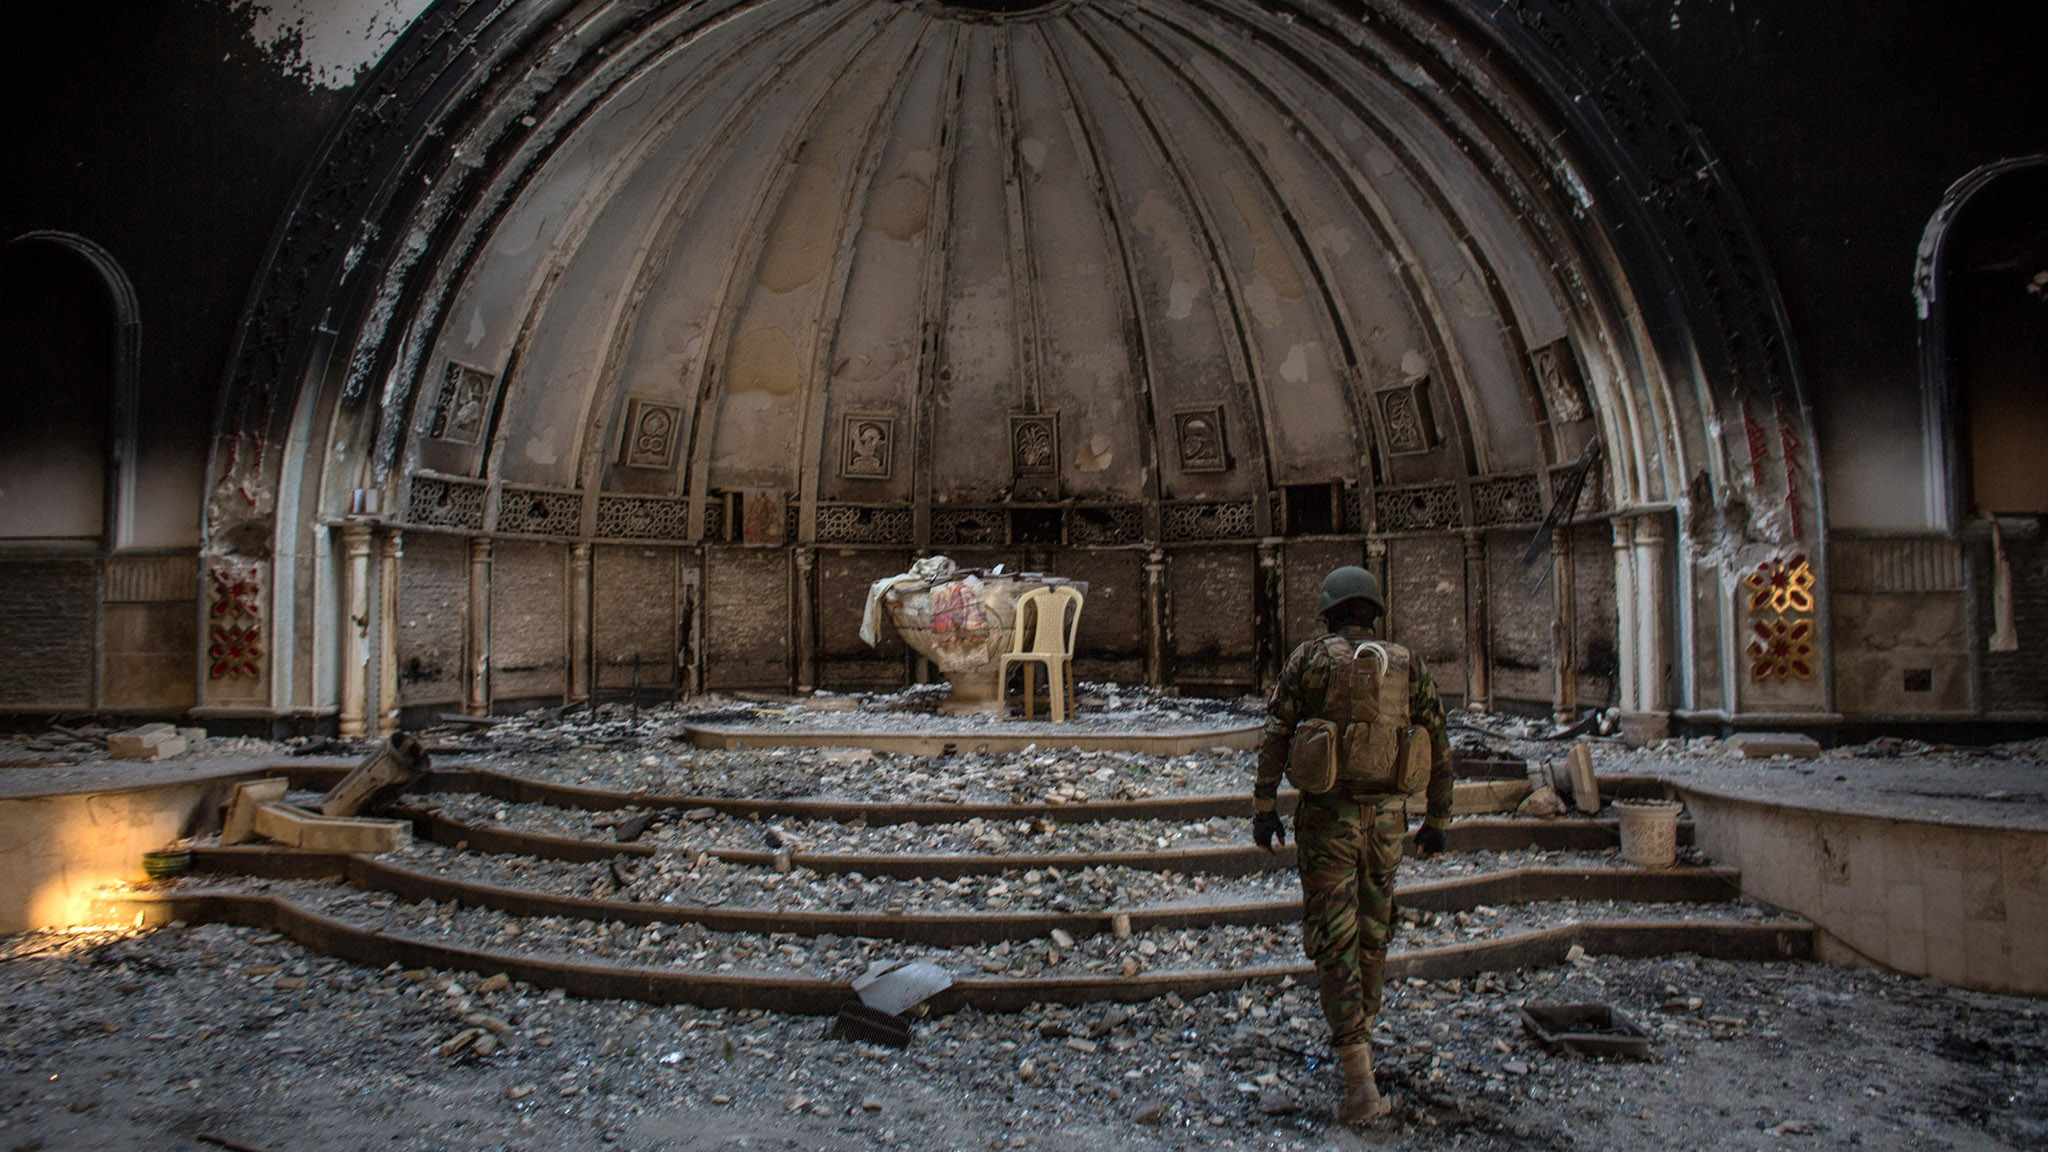 A fighter from the NPU (Nineveh Plain Protection Units) waks through a destroyed church on November 8, 2016 in Qaraqosh, Iraq. The NPU is a military organization made up of Assyrian Christians and was formed in late 2014 to defend against ISIL. Qaraqosh, a largely Assyrian City just 32km southeast of Mosul was taken by ISIL in August, 2014 forcing all residents to flee, the town was largely destroyed with all of the churches burned or heavily damaged. The town stayed under ISIL control last week when it was liberated during the Mosul Offensive.  (Photo by Chris McGrath/Getty Images) ***BESTPIX***